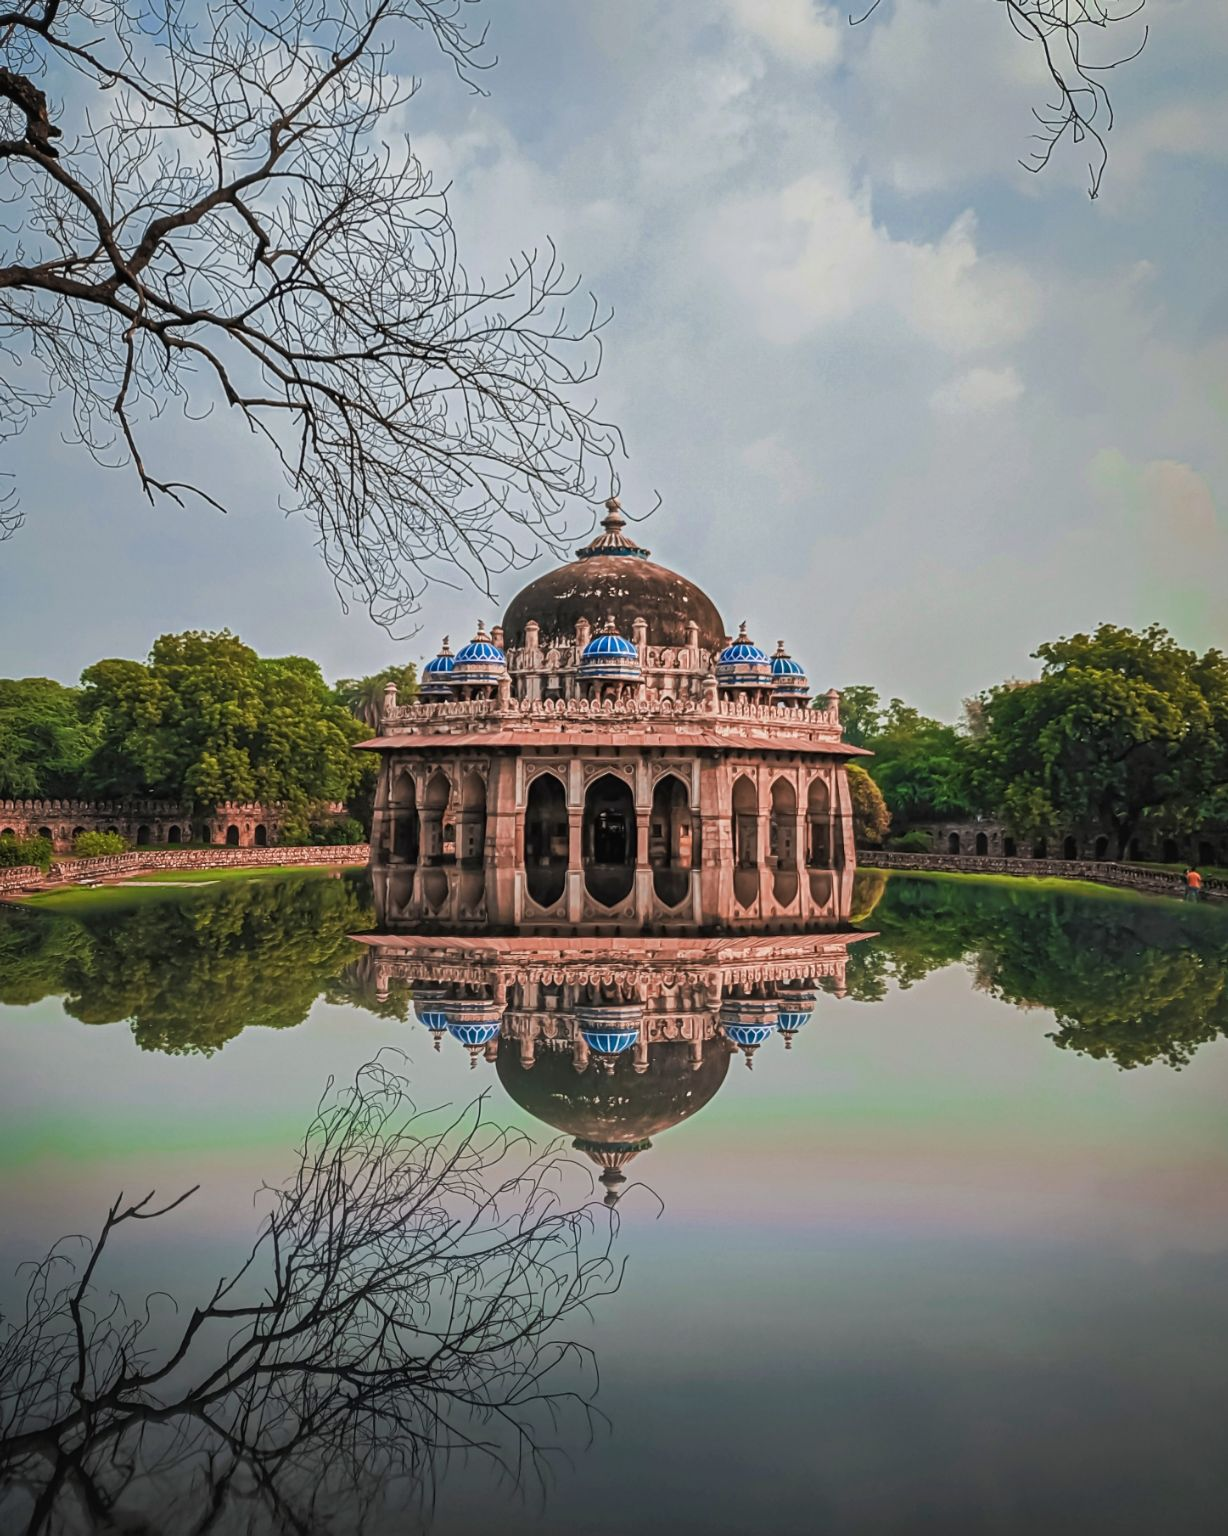 Photo of Isa Khan's Tomb By Rituraj Anand